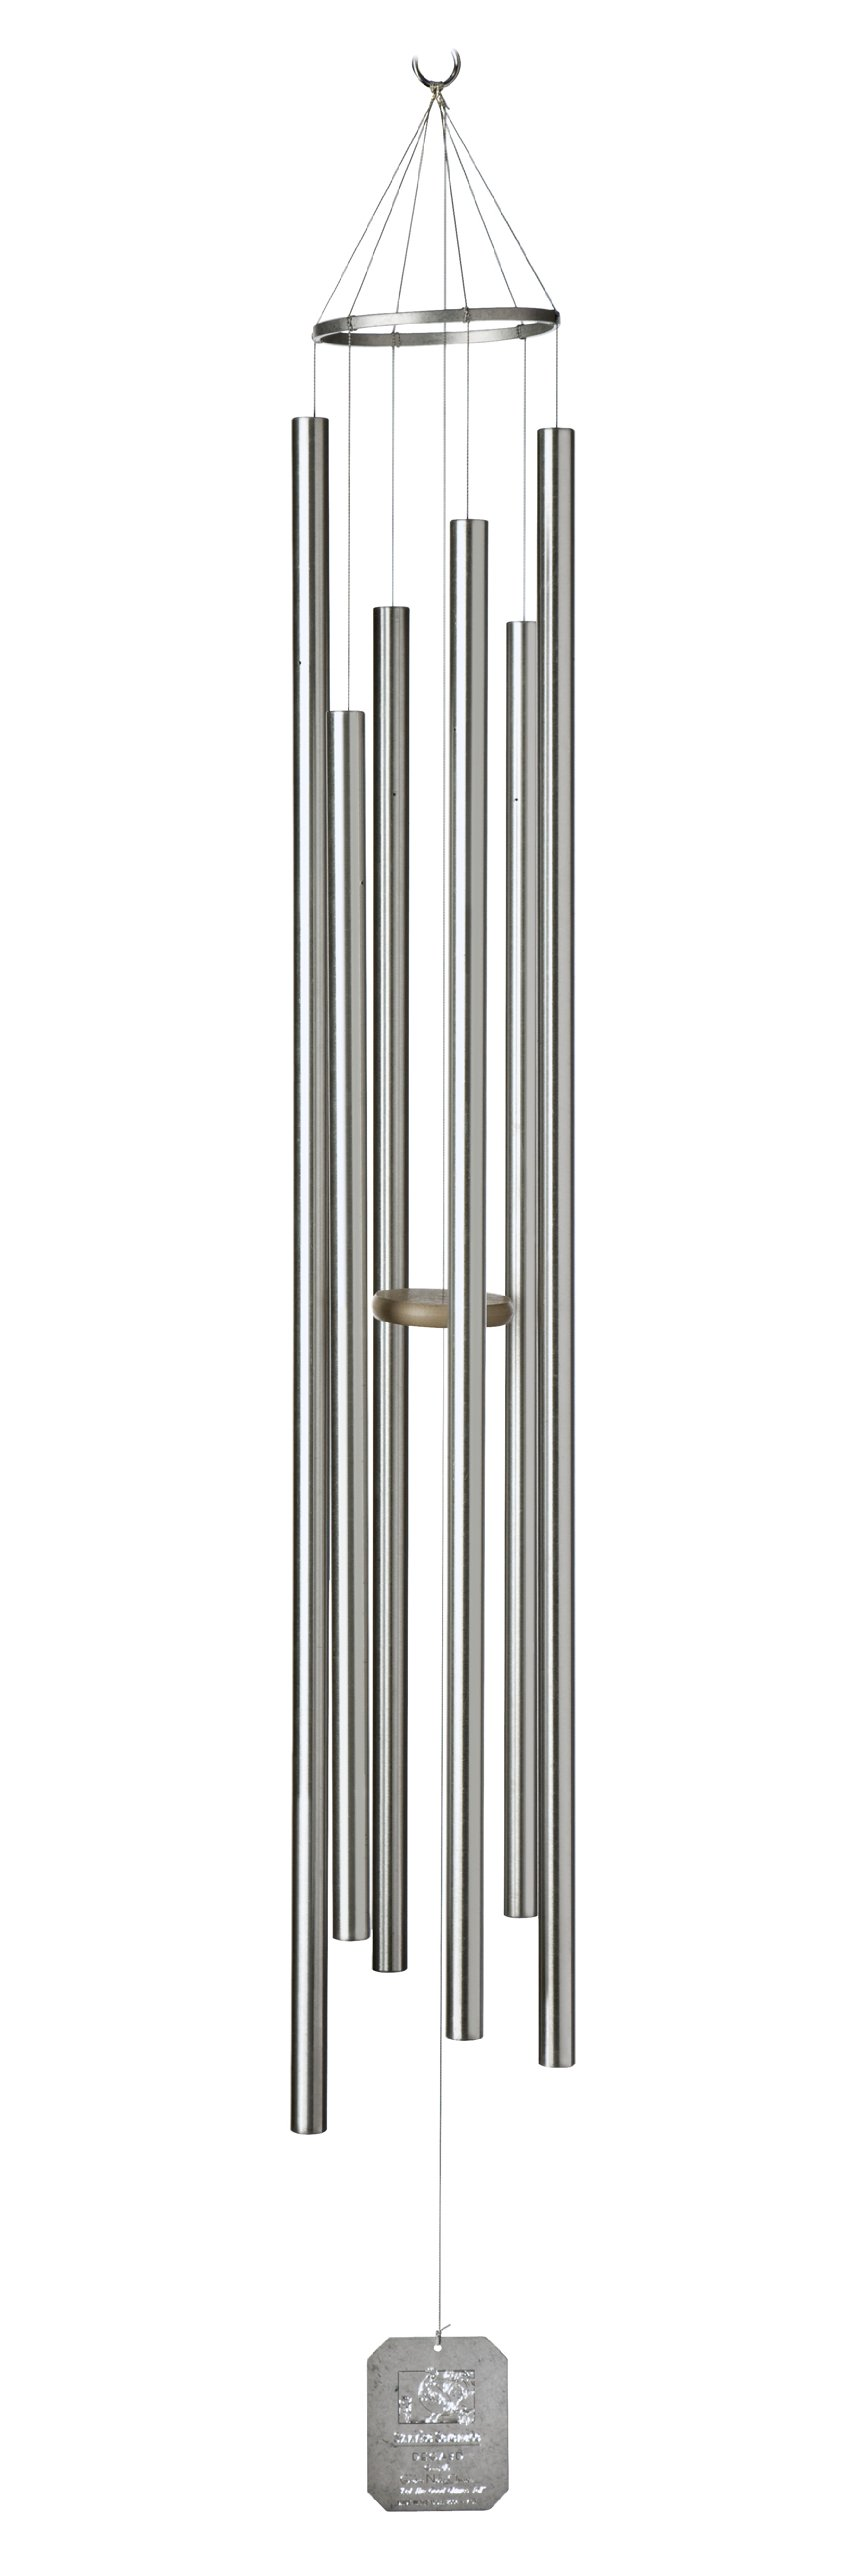 Grace Note Chimes 7ST Regular Steeple Sunrise Serenade Wind Chimes, 57-Inch, Silver by Grace Note Chimes (Image #1)